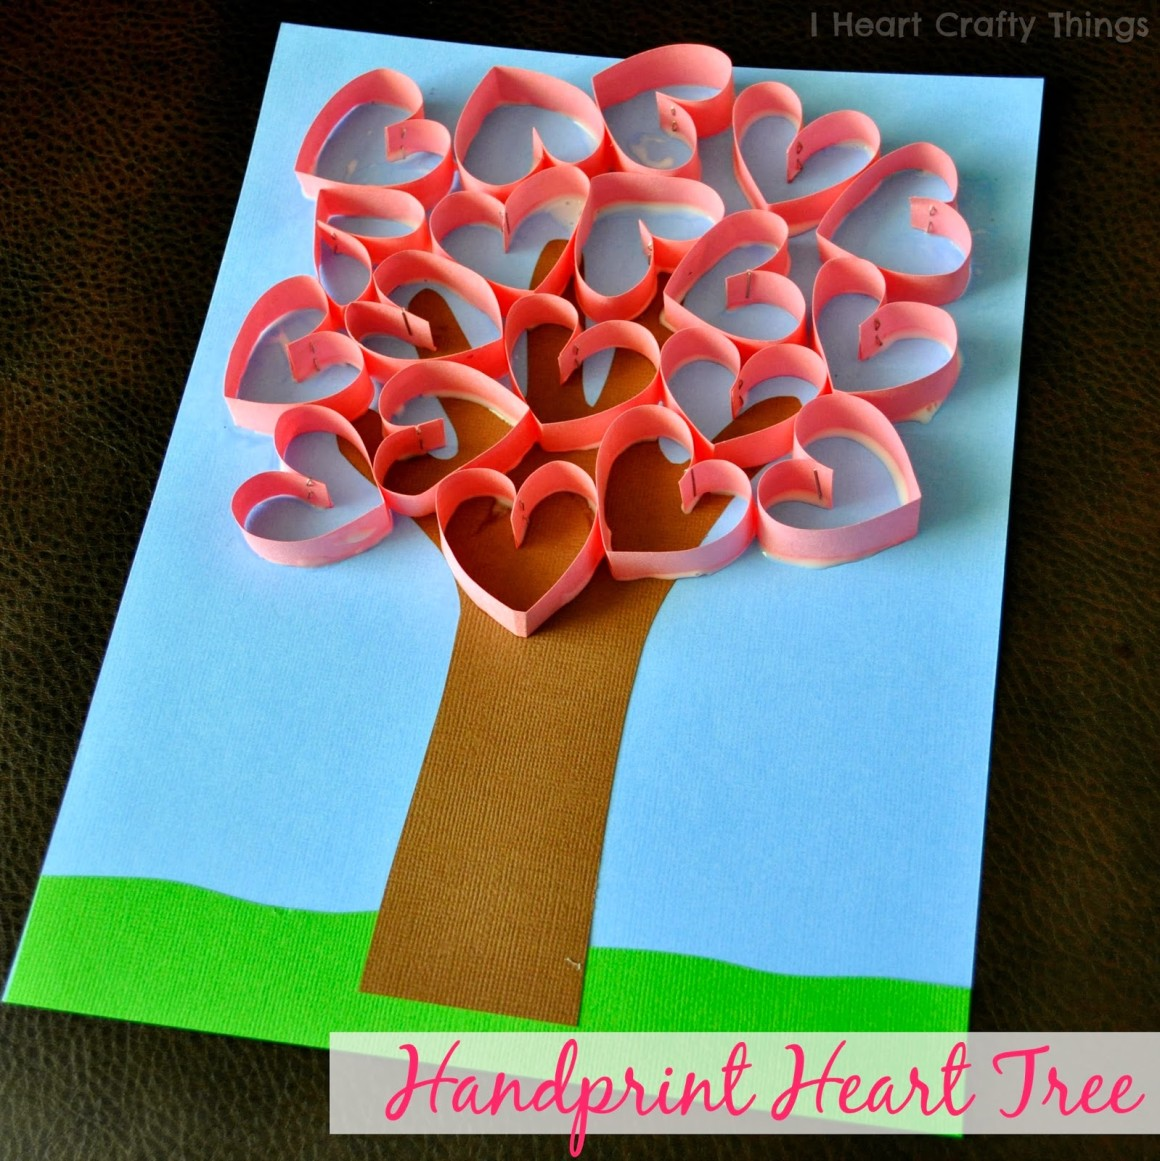 Handprint Heart Tree from I Heart Crafty Things